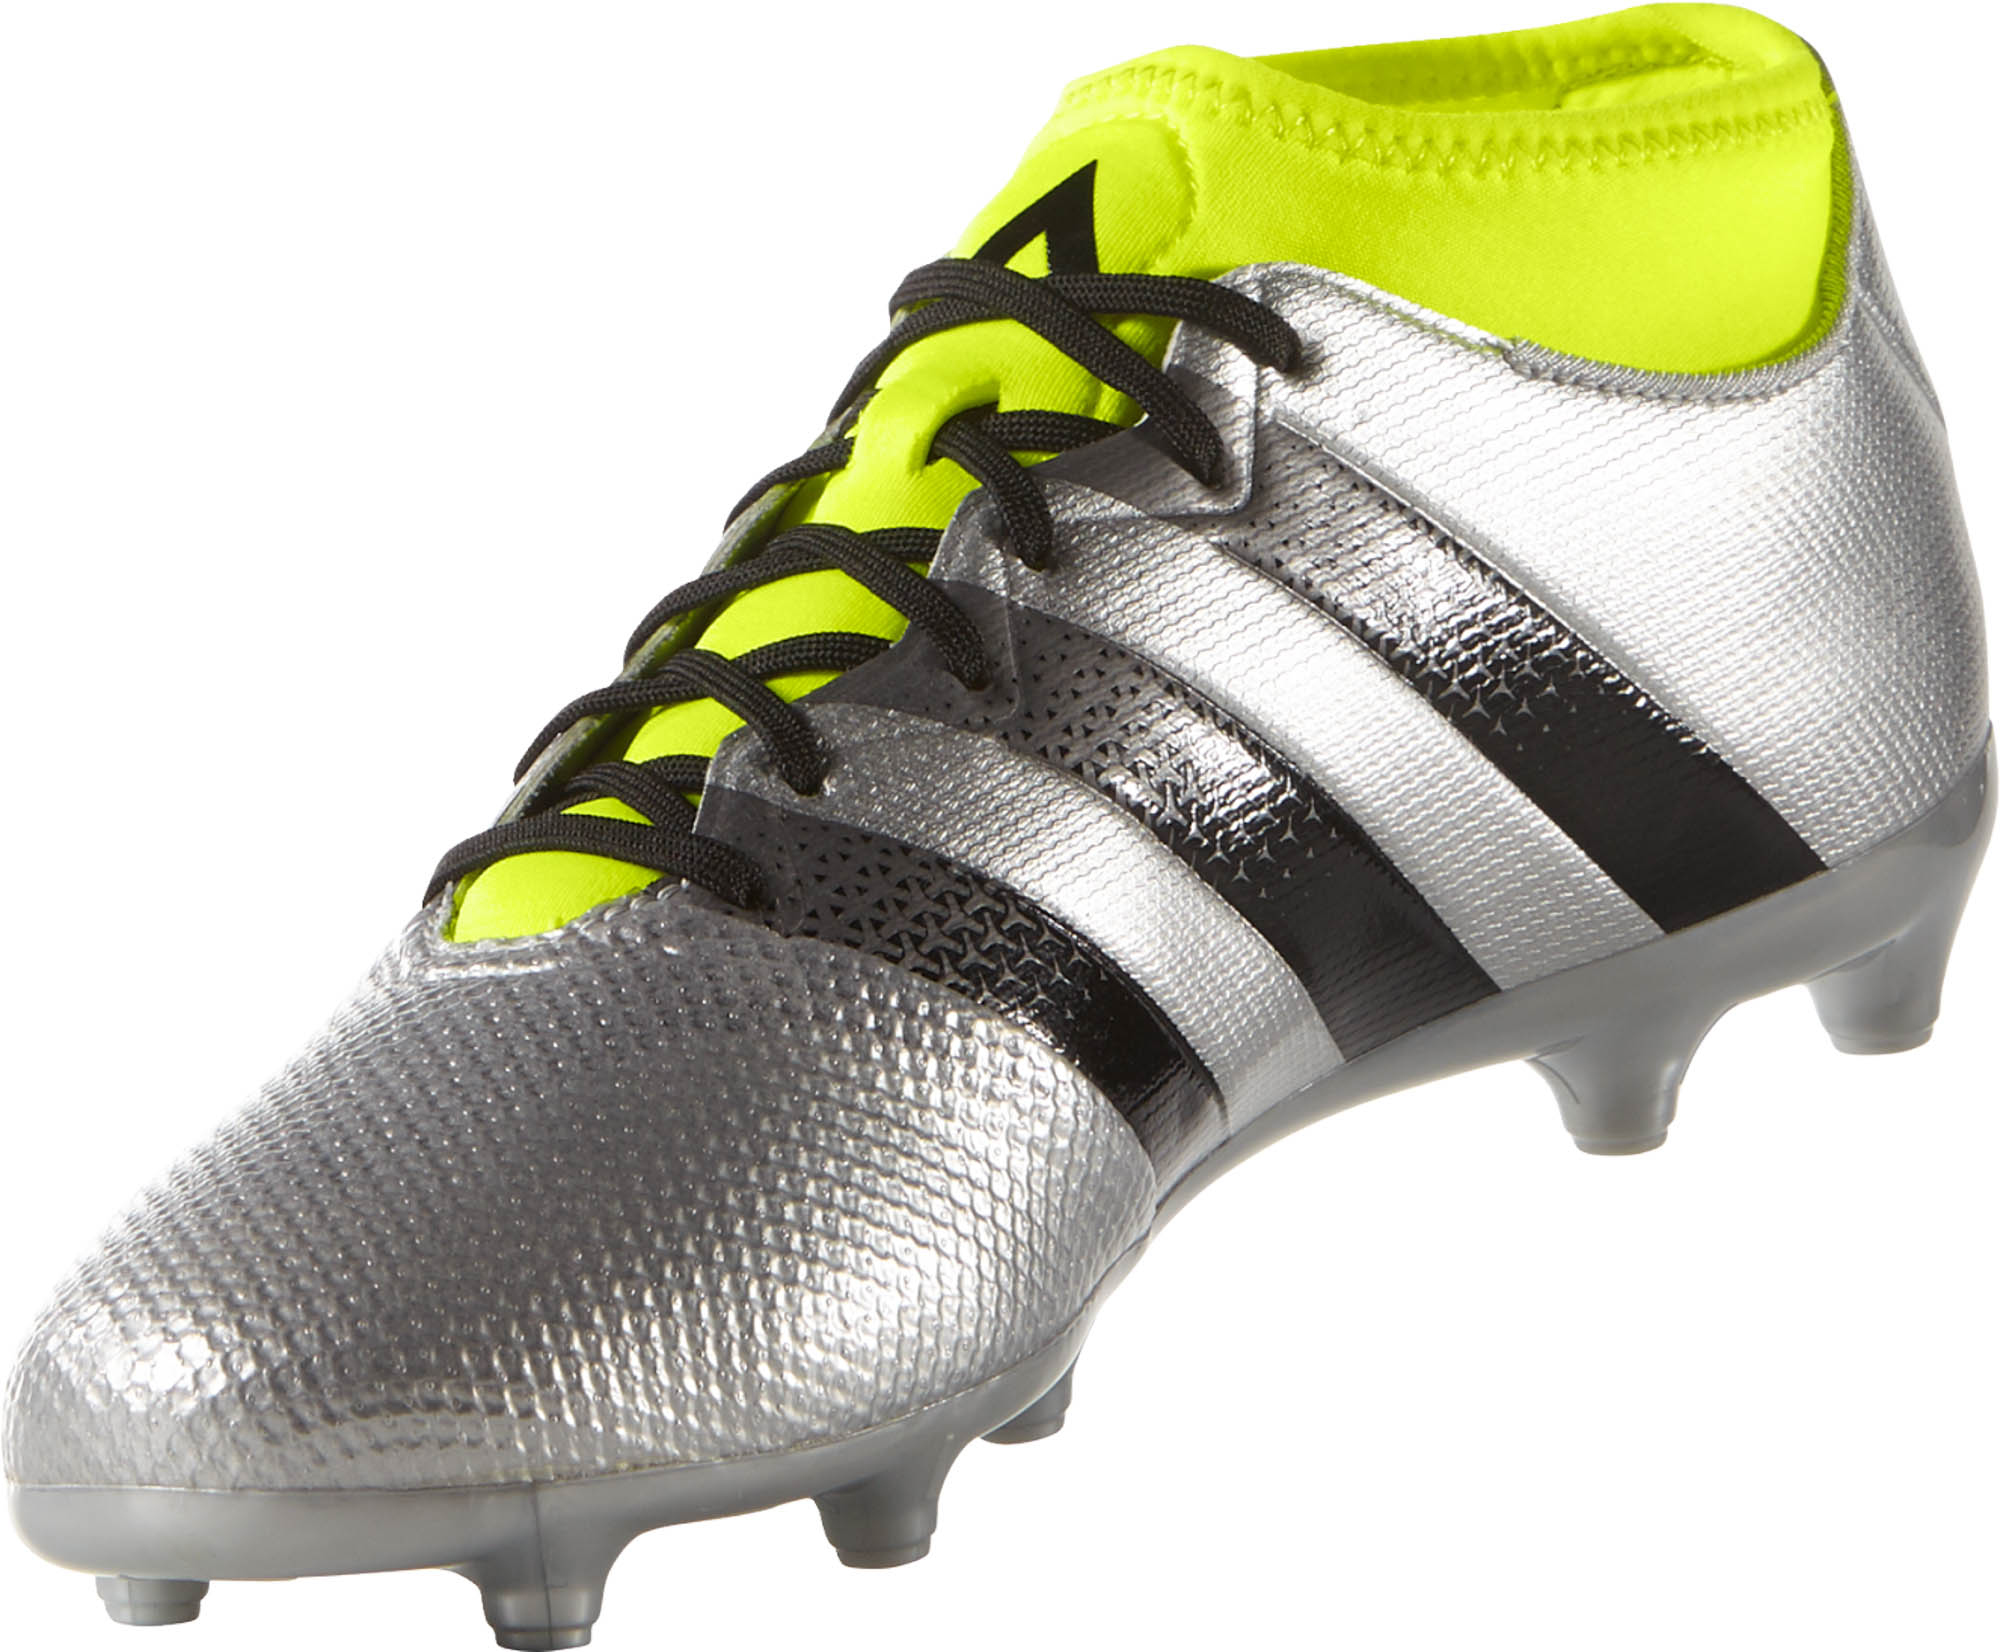 f9fe86843 adidas ACE 16.3 Primemesh FG Cleats - Silver adidas Soccer Shoes